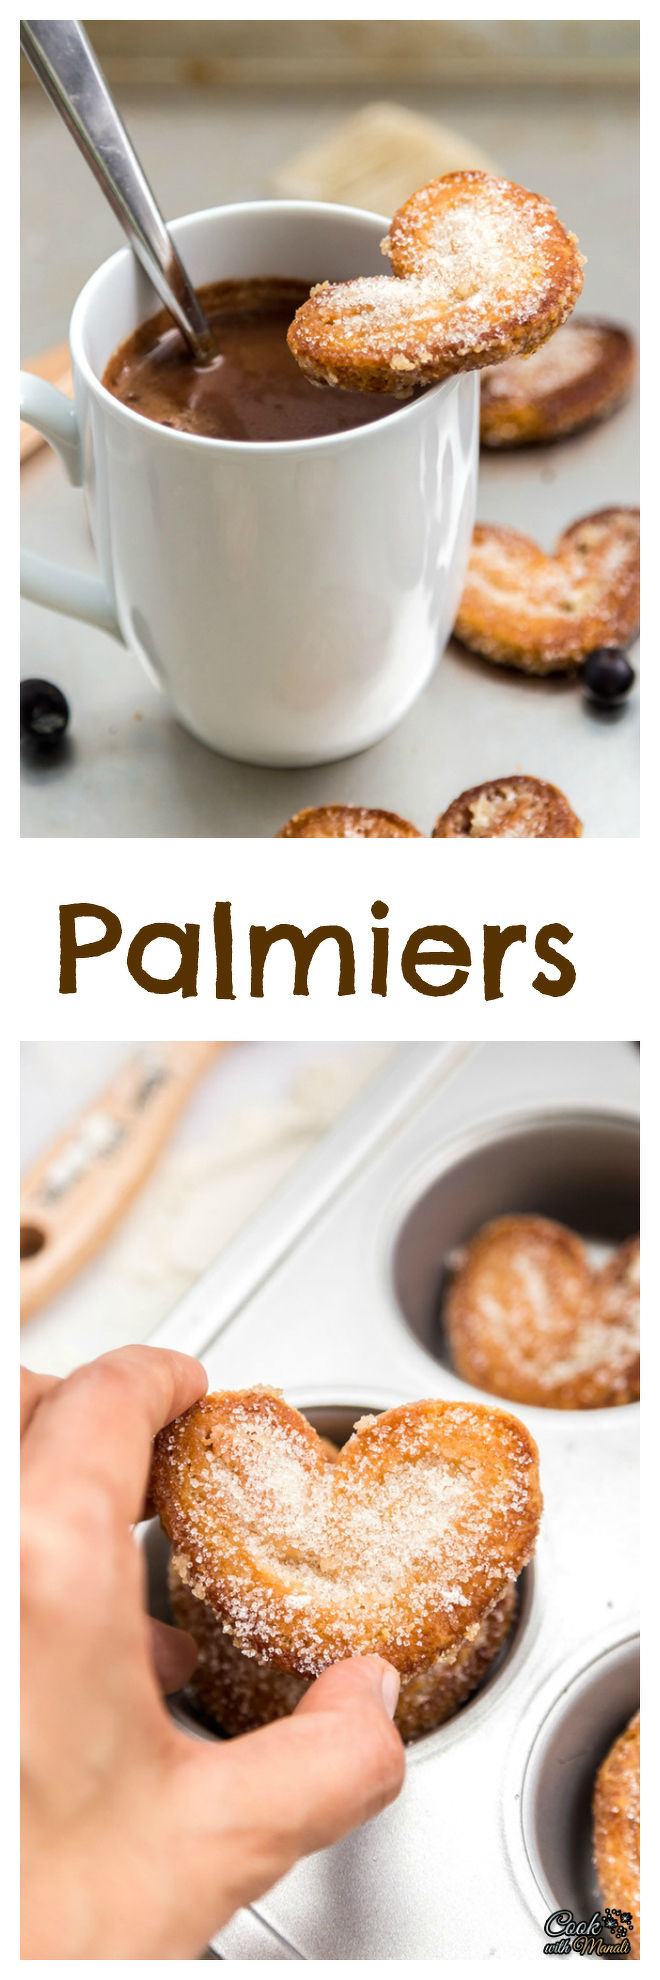 Palmiers-Collage-nocwm